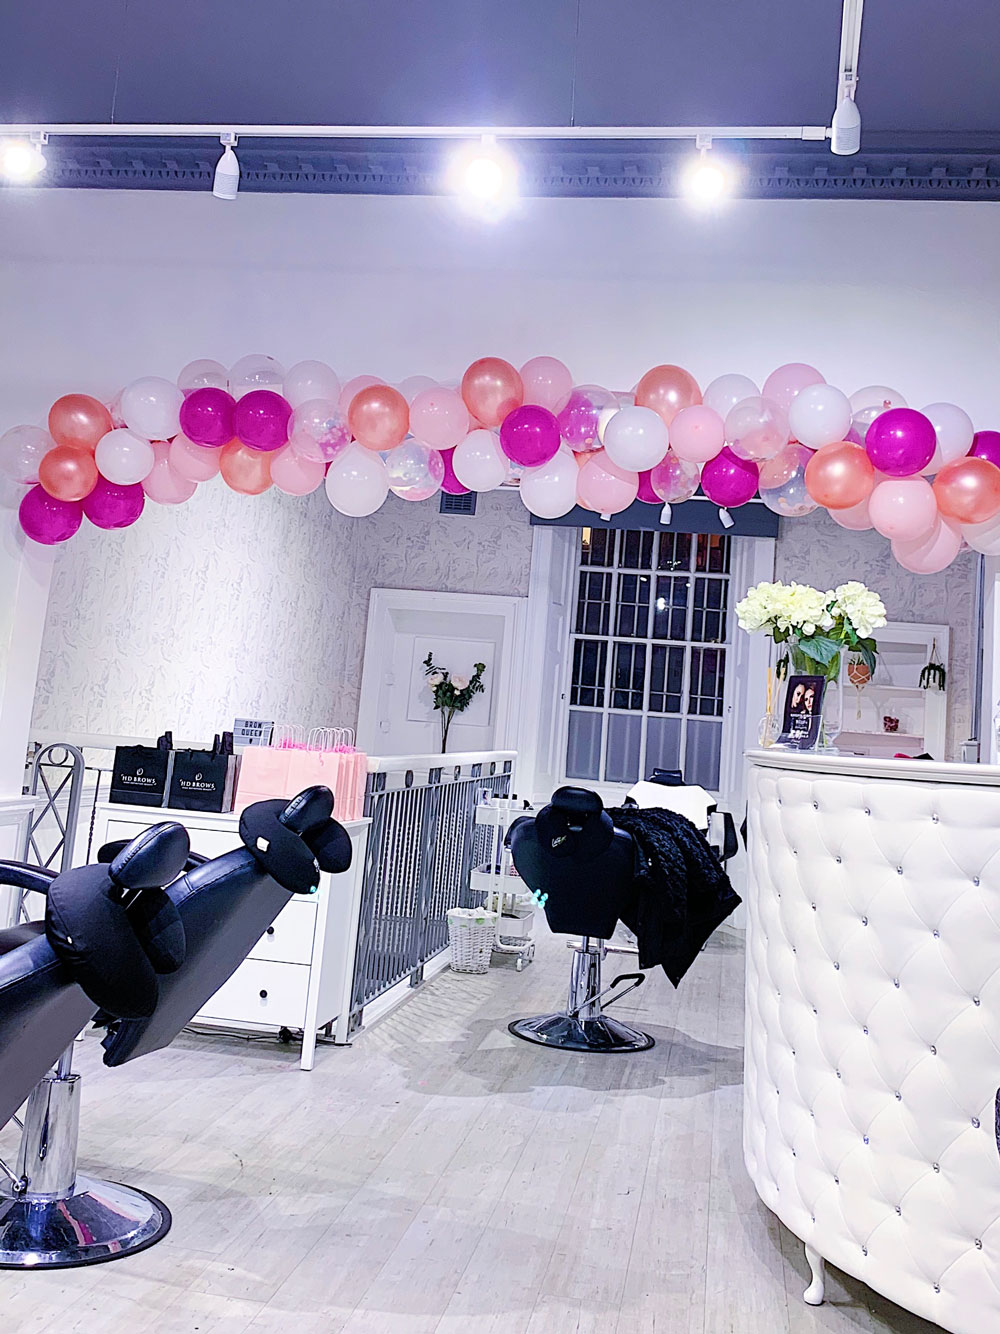 Salon with balloons